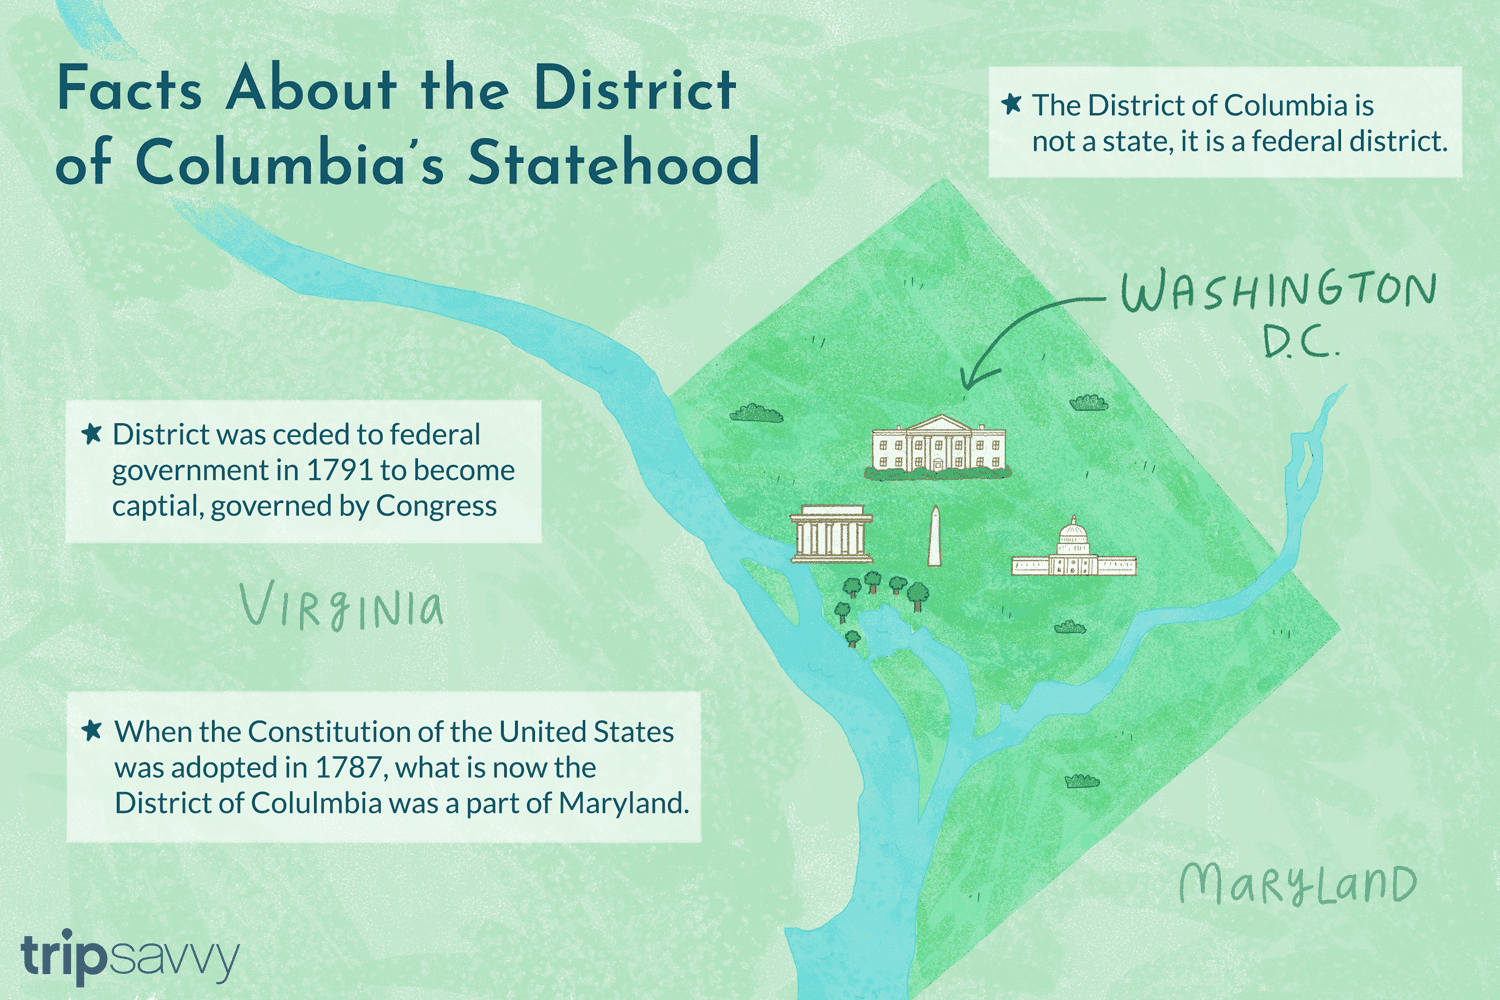 Is the District of Columbia a State?